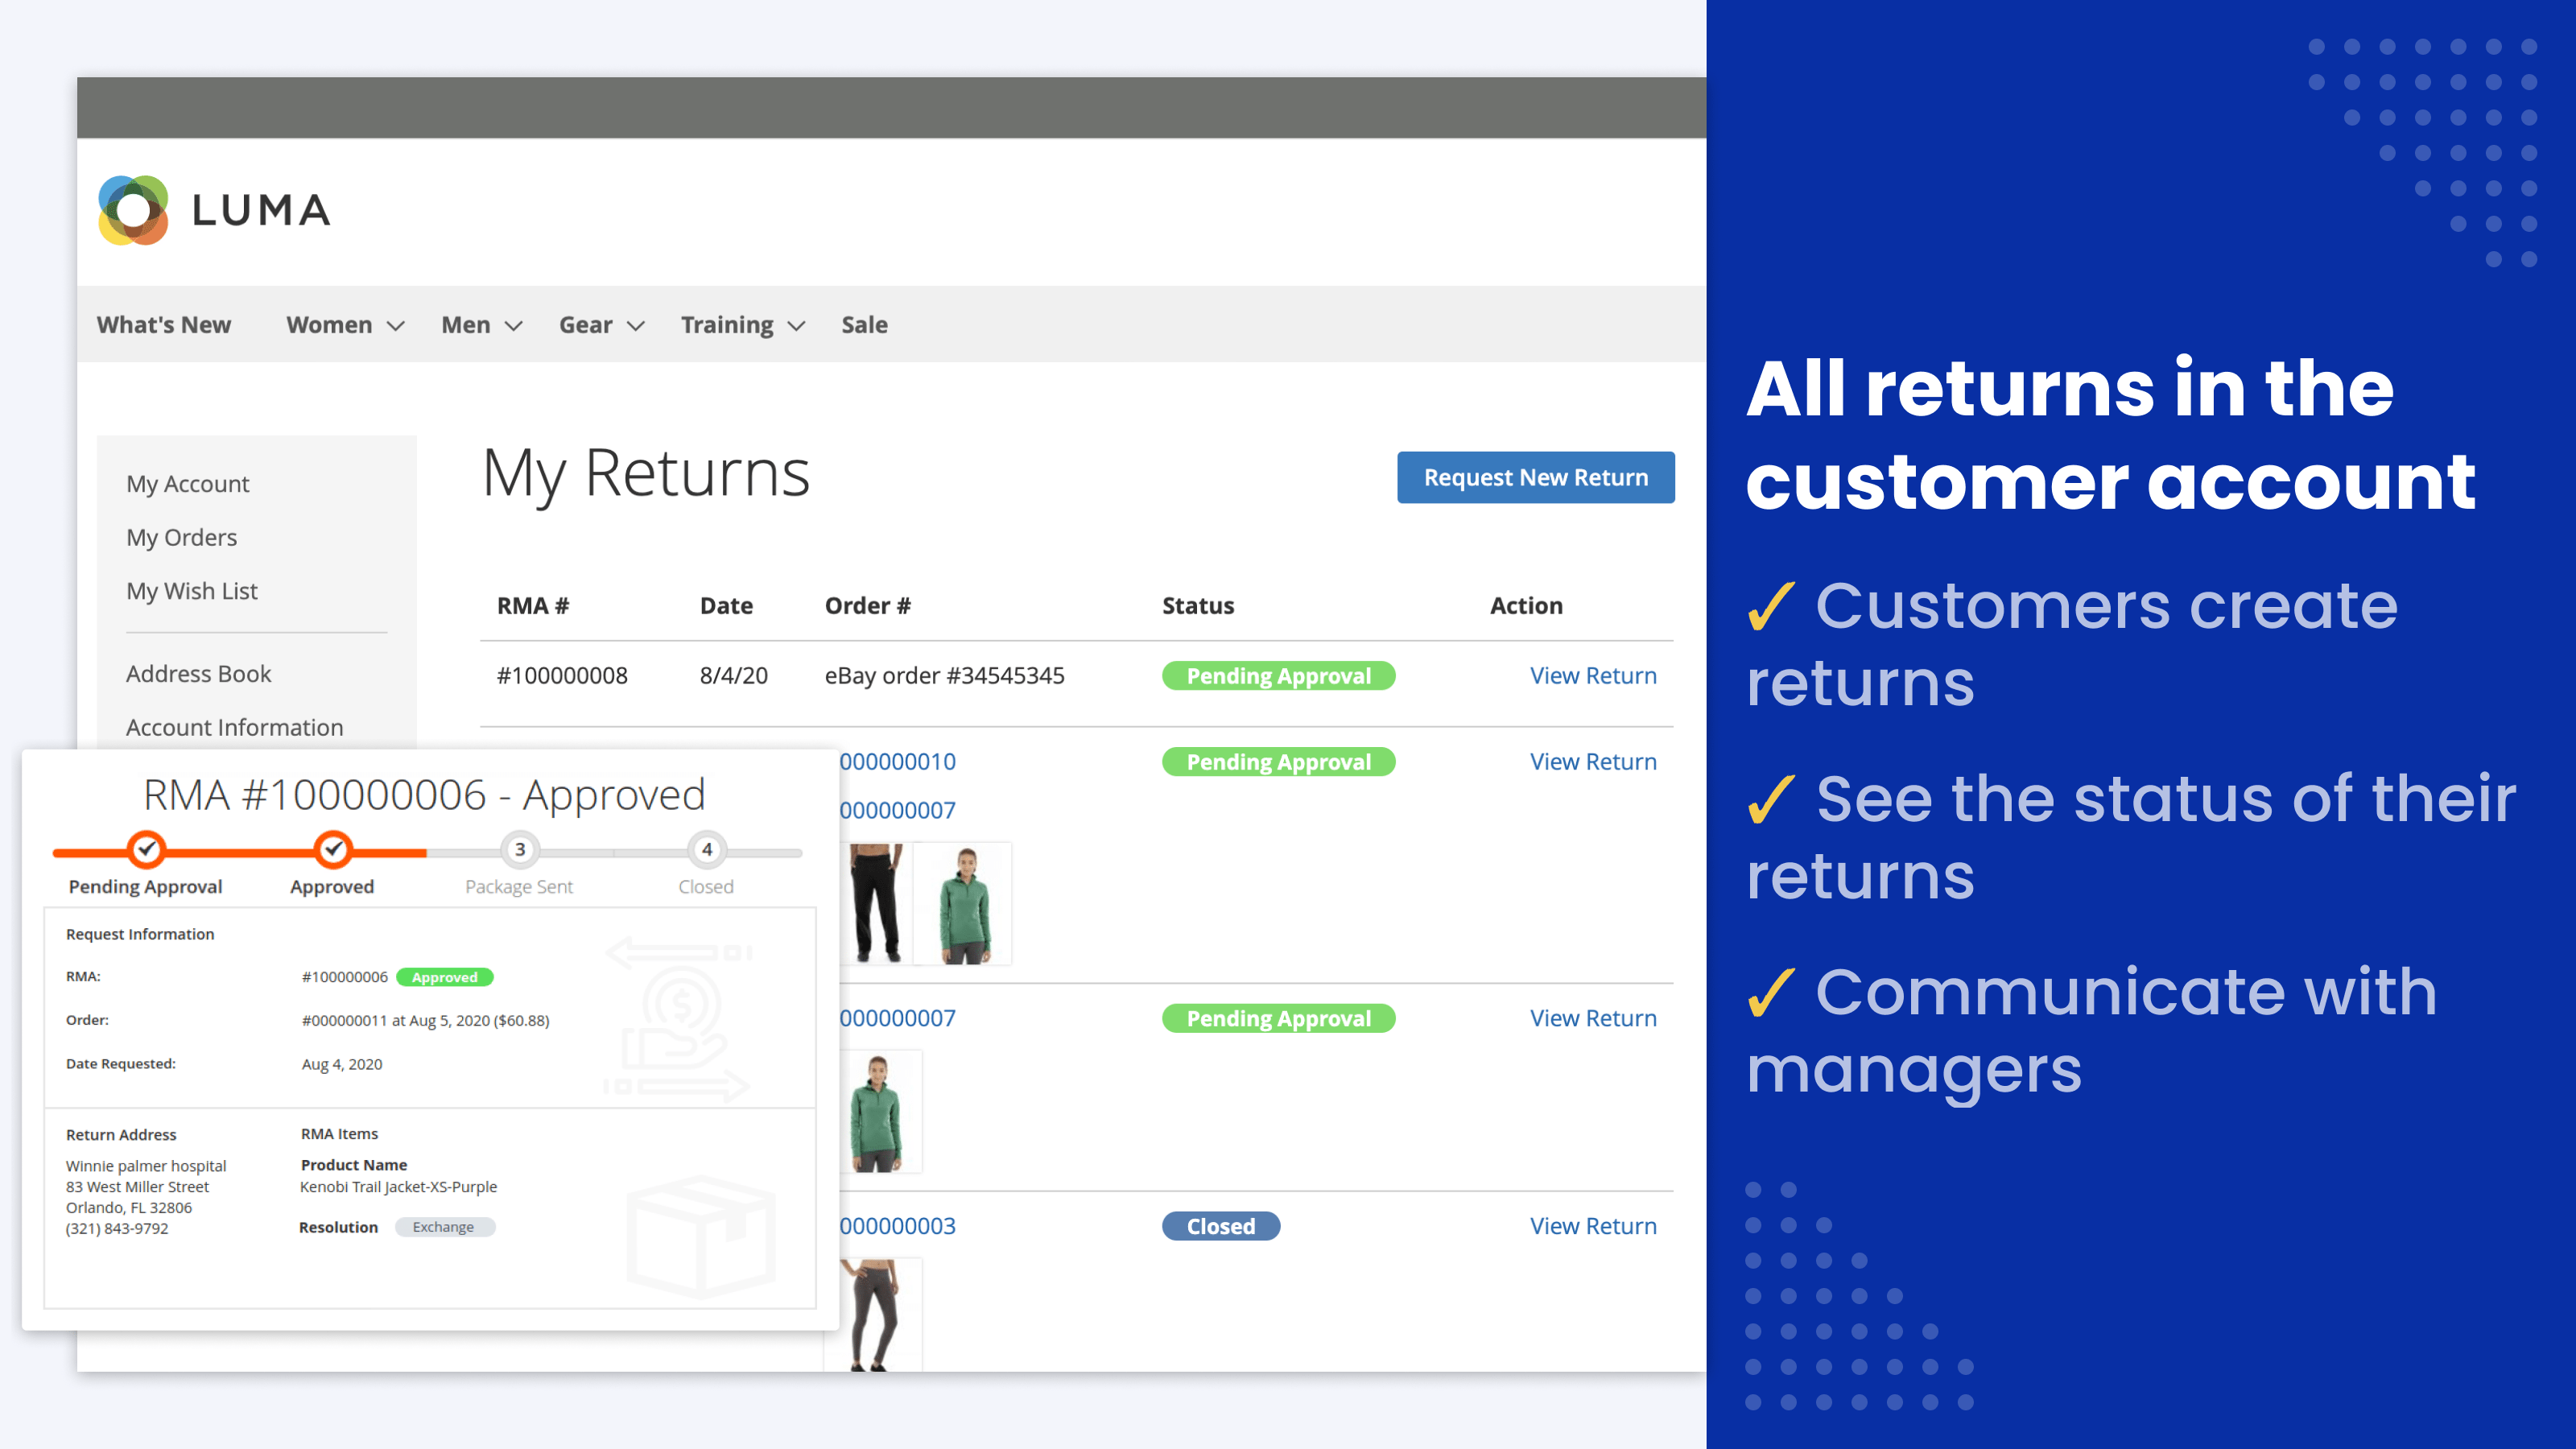 All RMA returns in the customer account